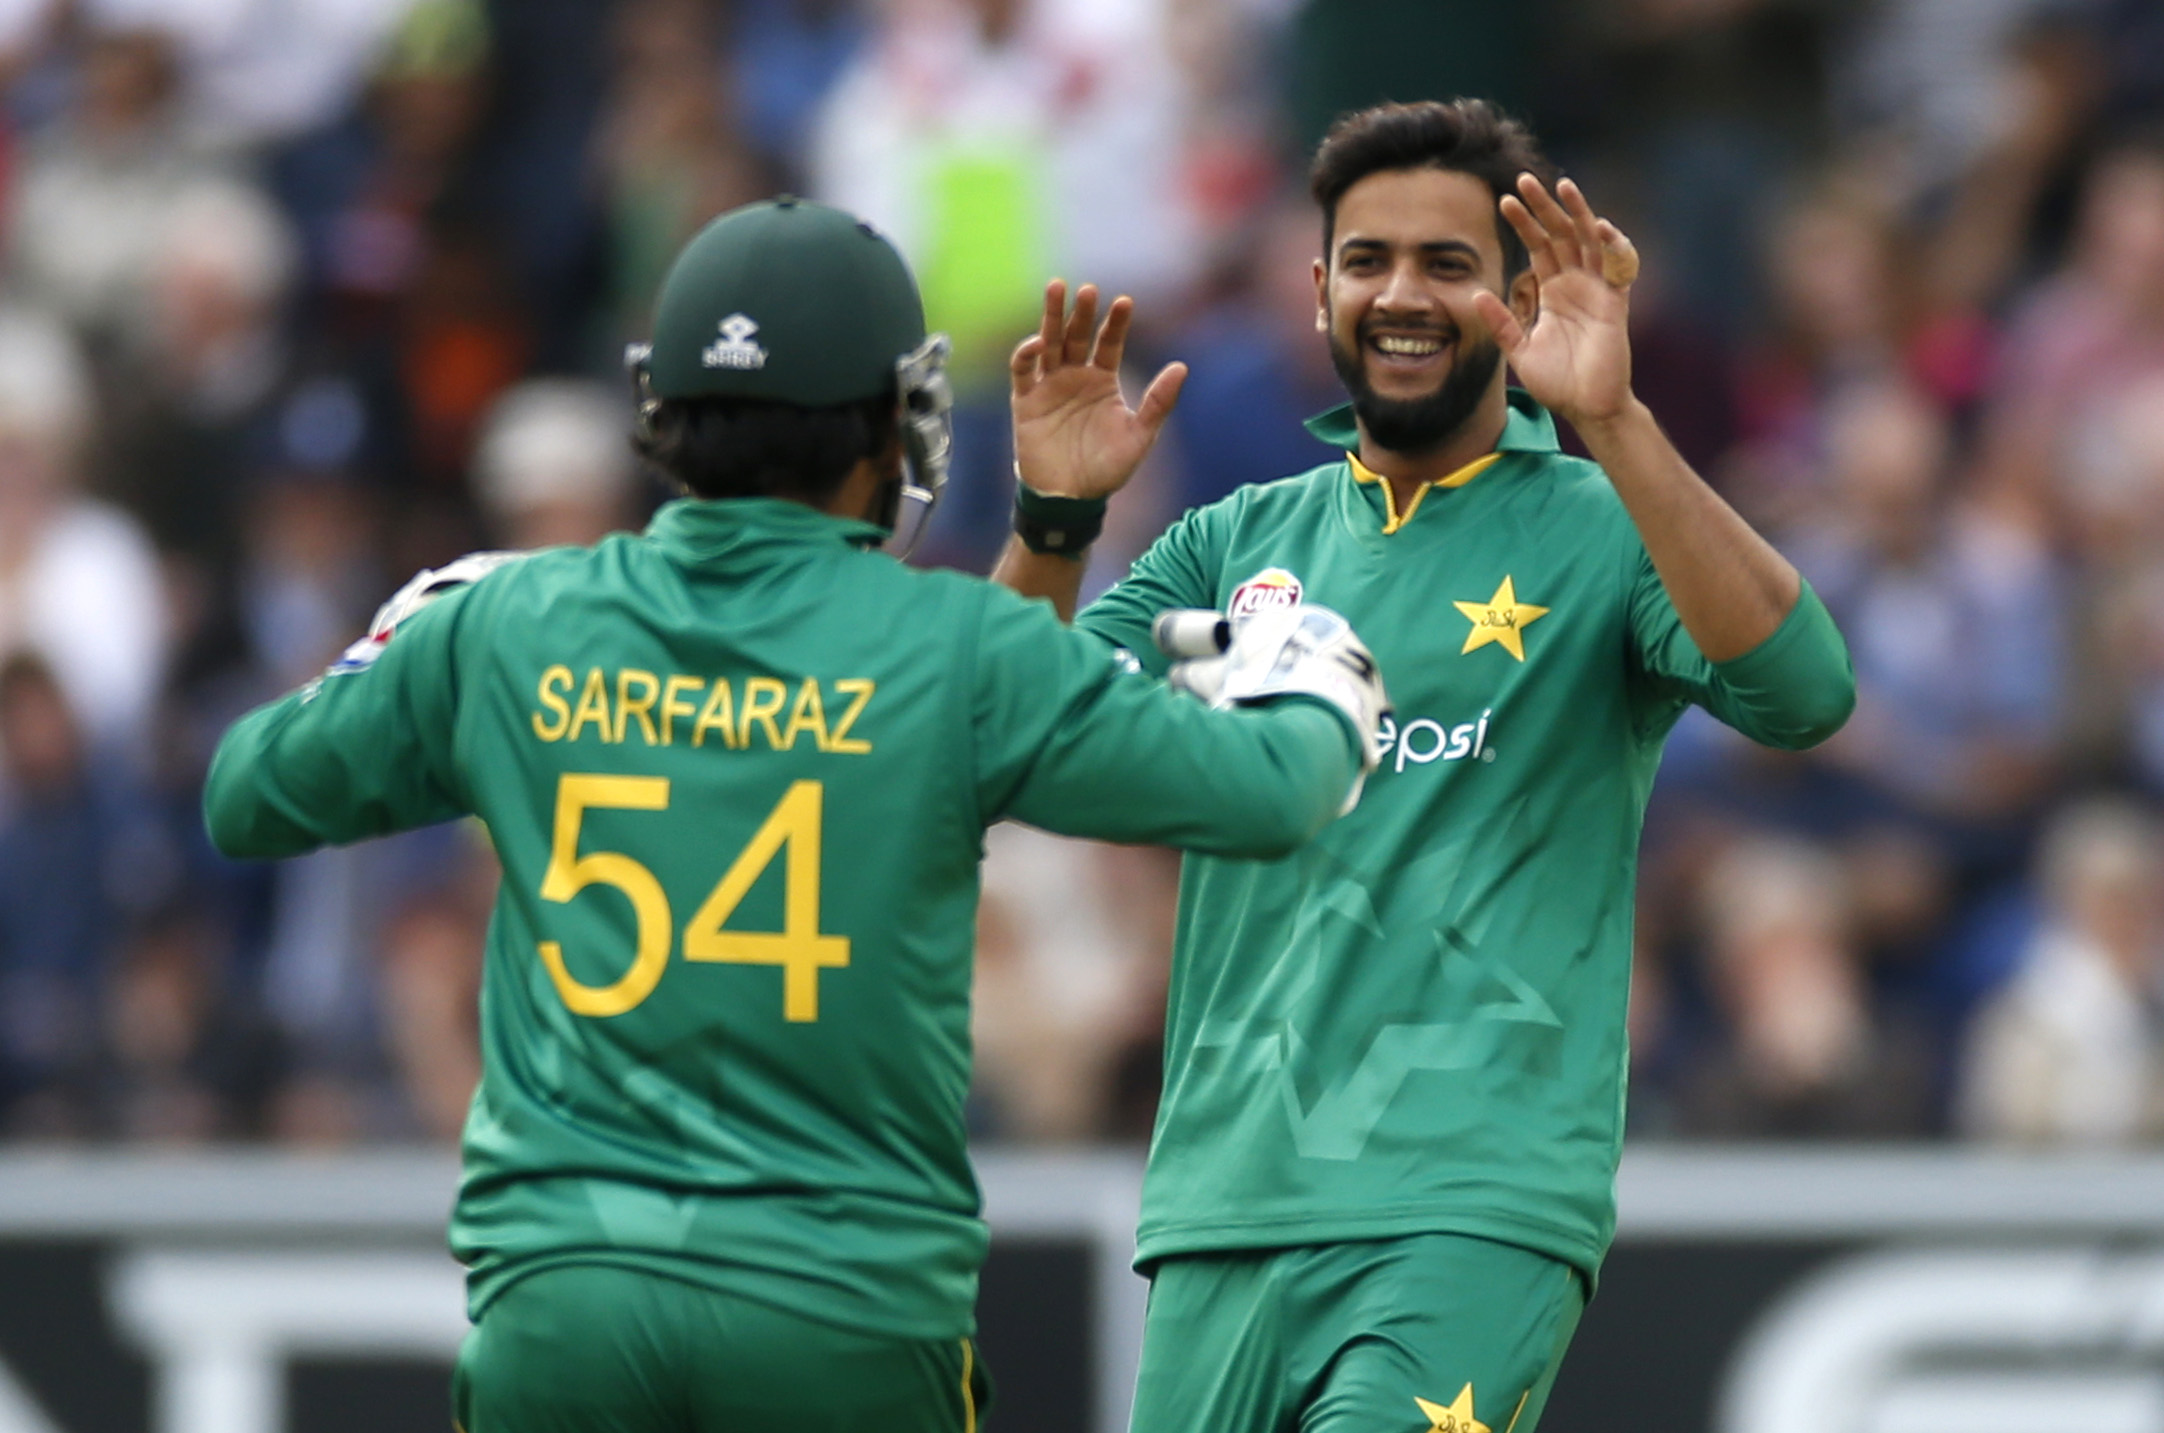 imad wasim also reveals what he thinks about new limited overs captain sarfraz ahmed photo reuters